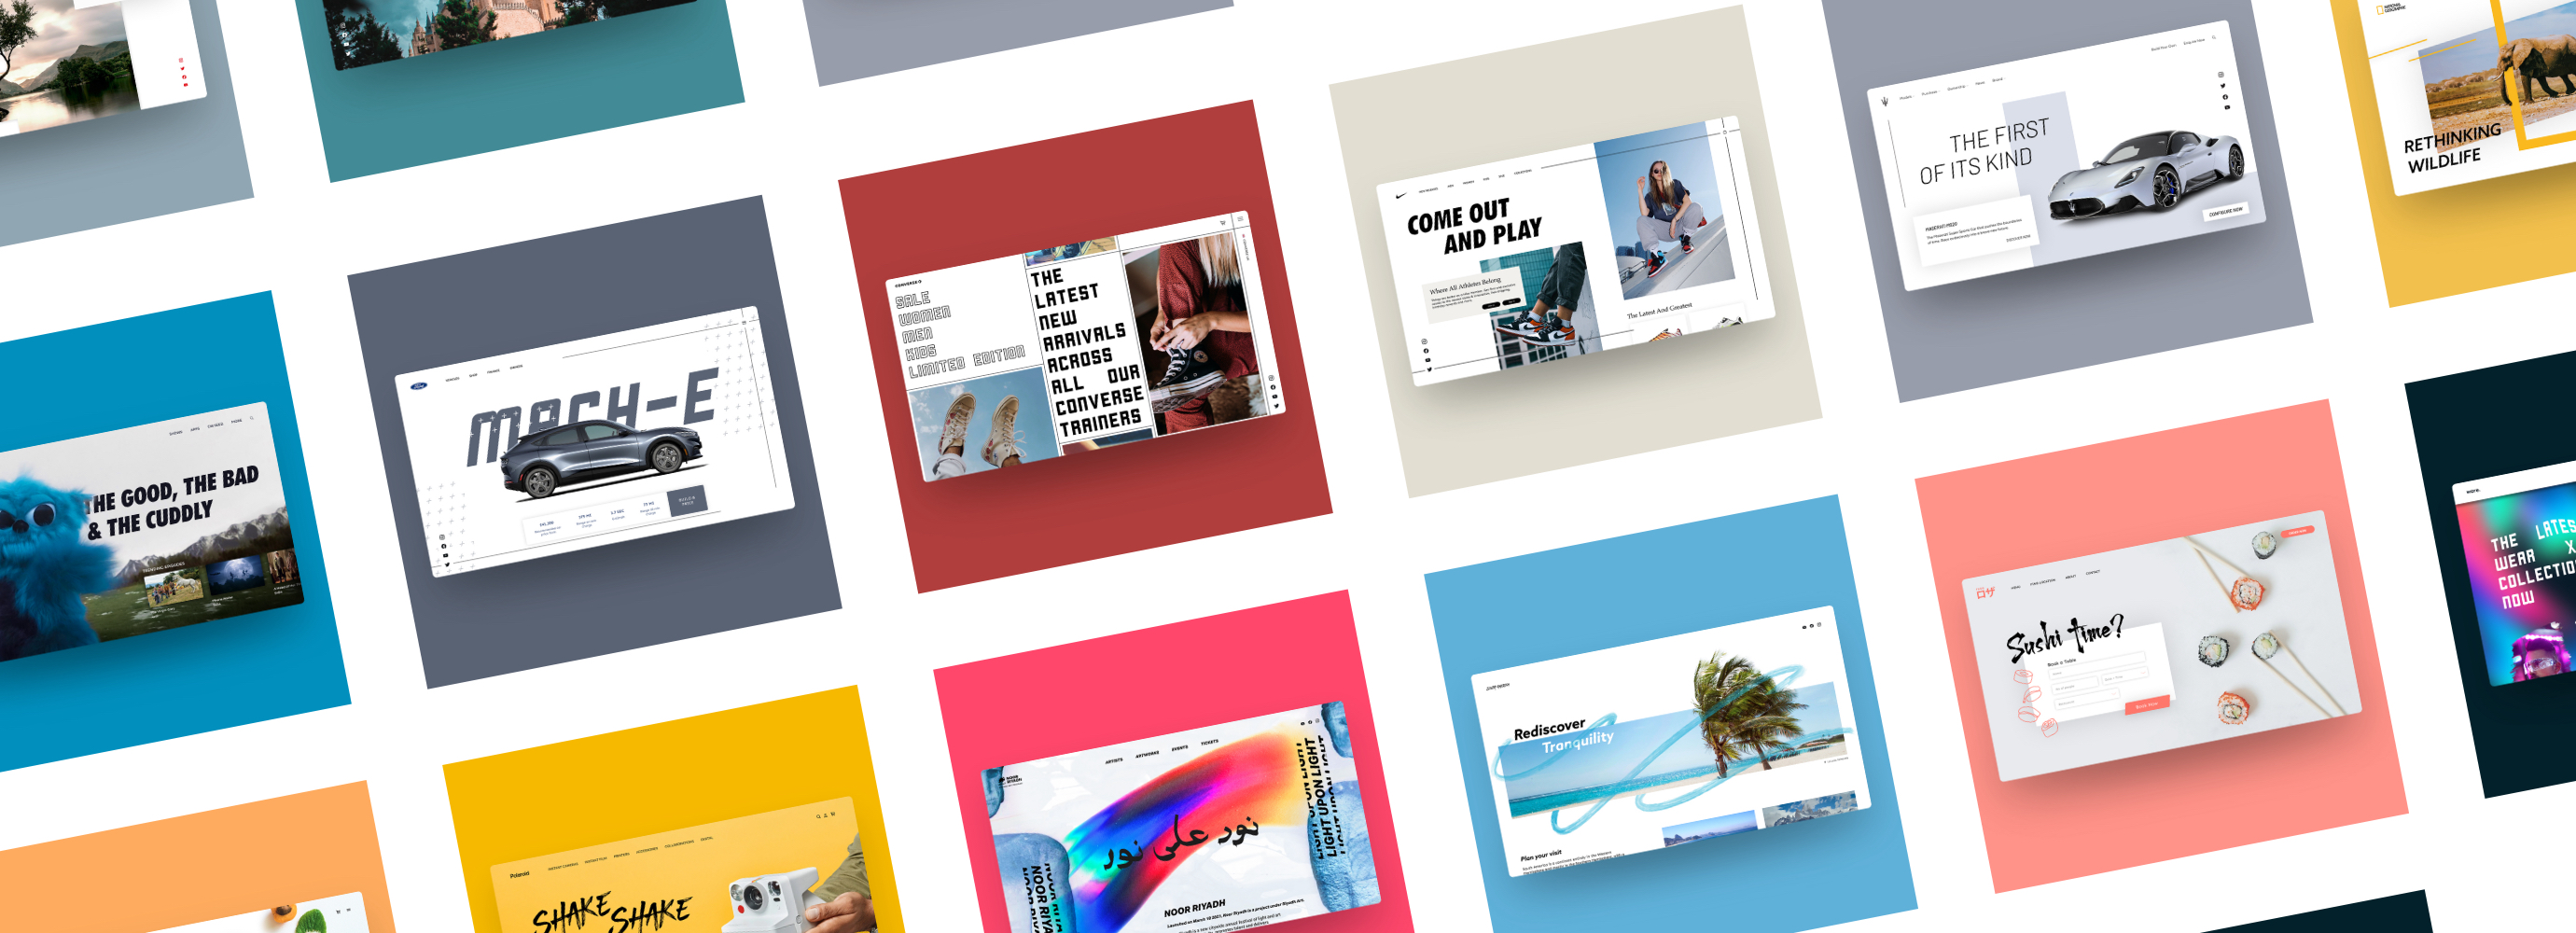 Collage of web designs